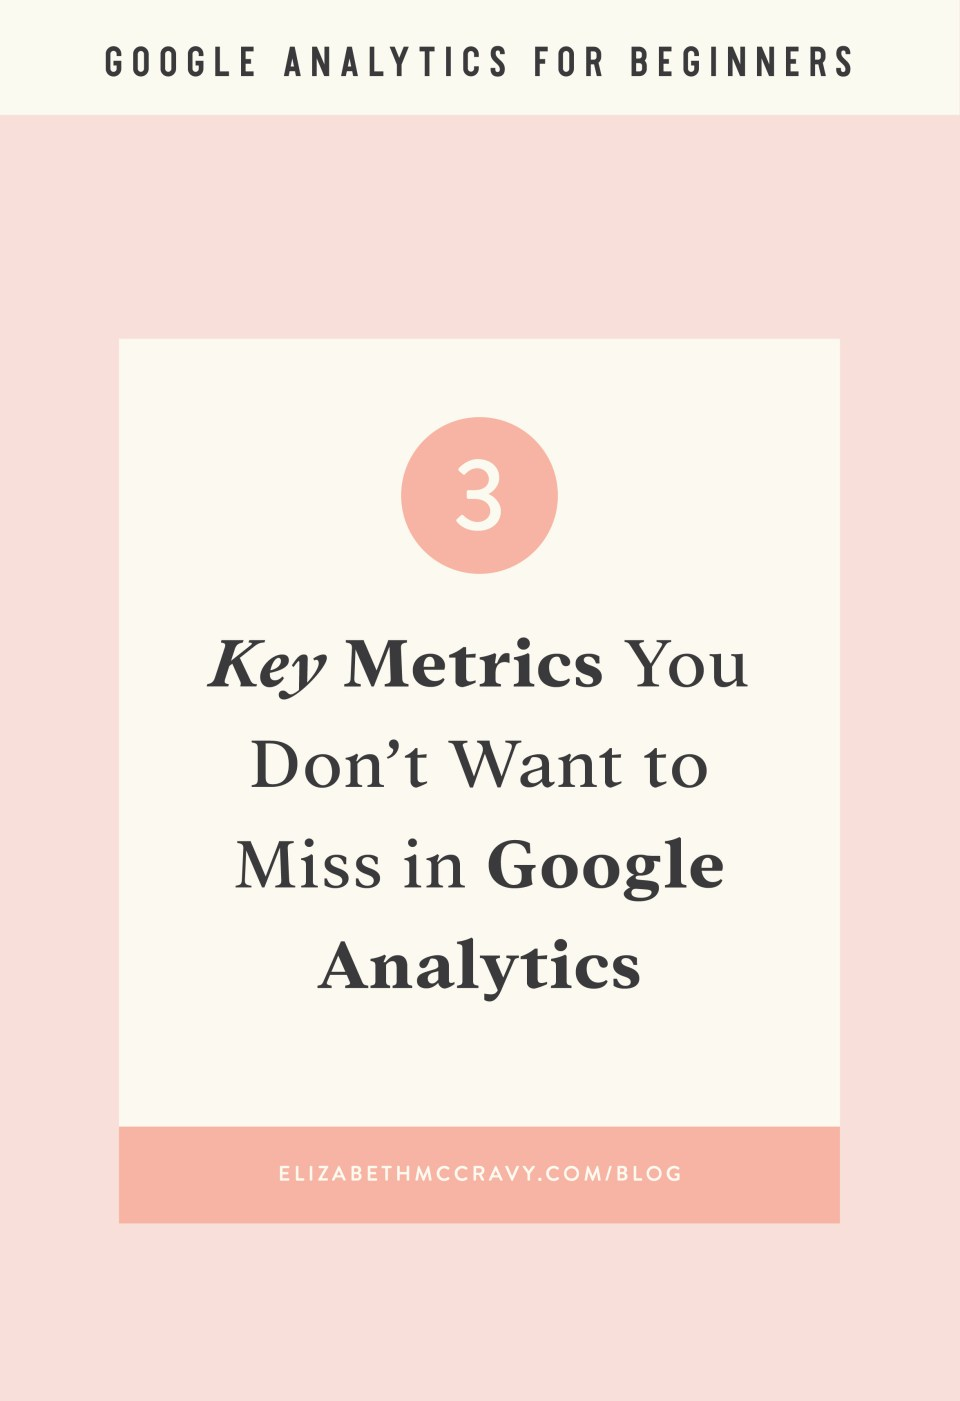 Google Analytics for Beginners: Key Analytics You Need to Pay Attention to In Your Website's Analytics